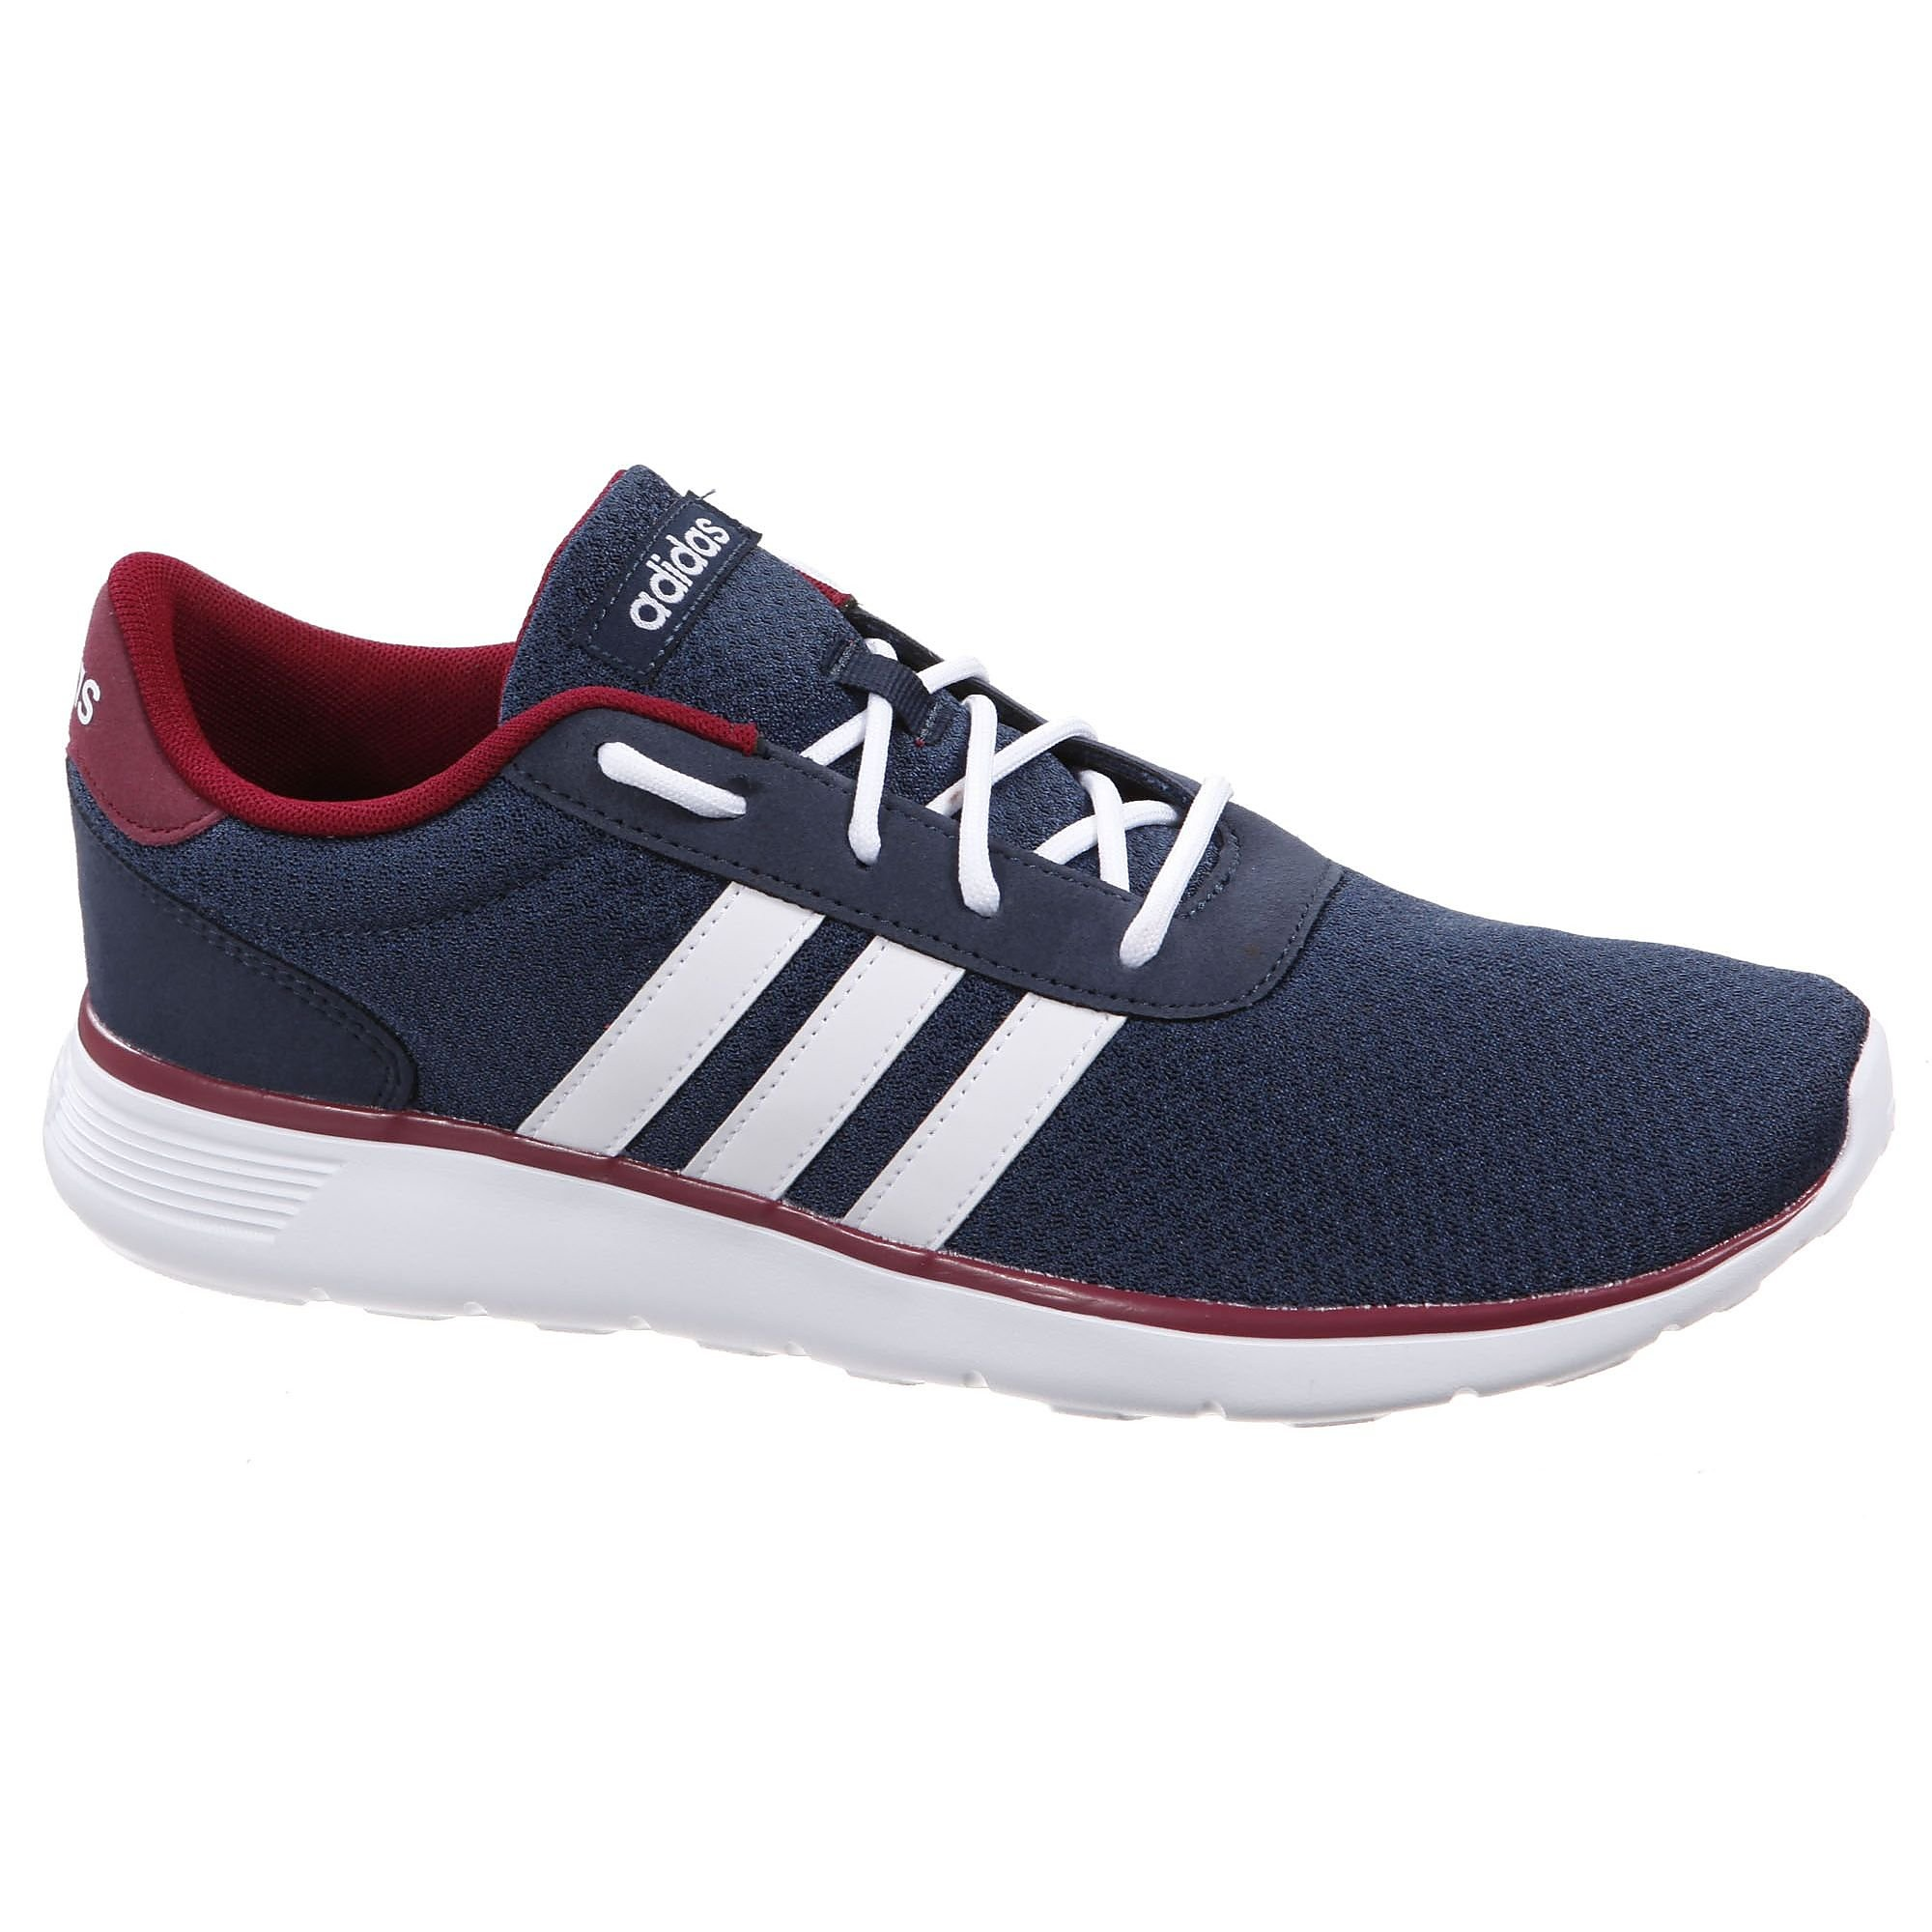 Sneakers adidas Lite Racer AW5048